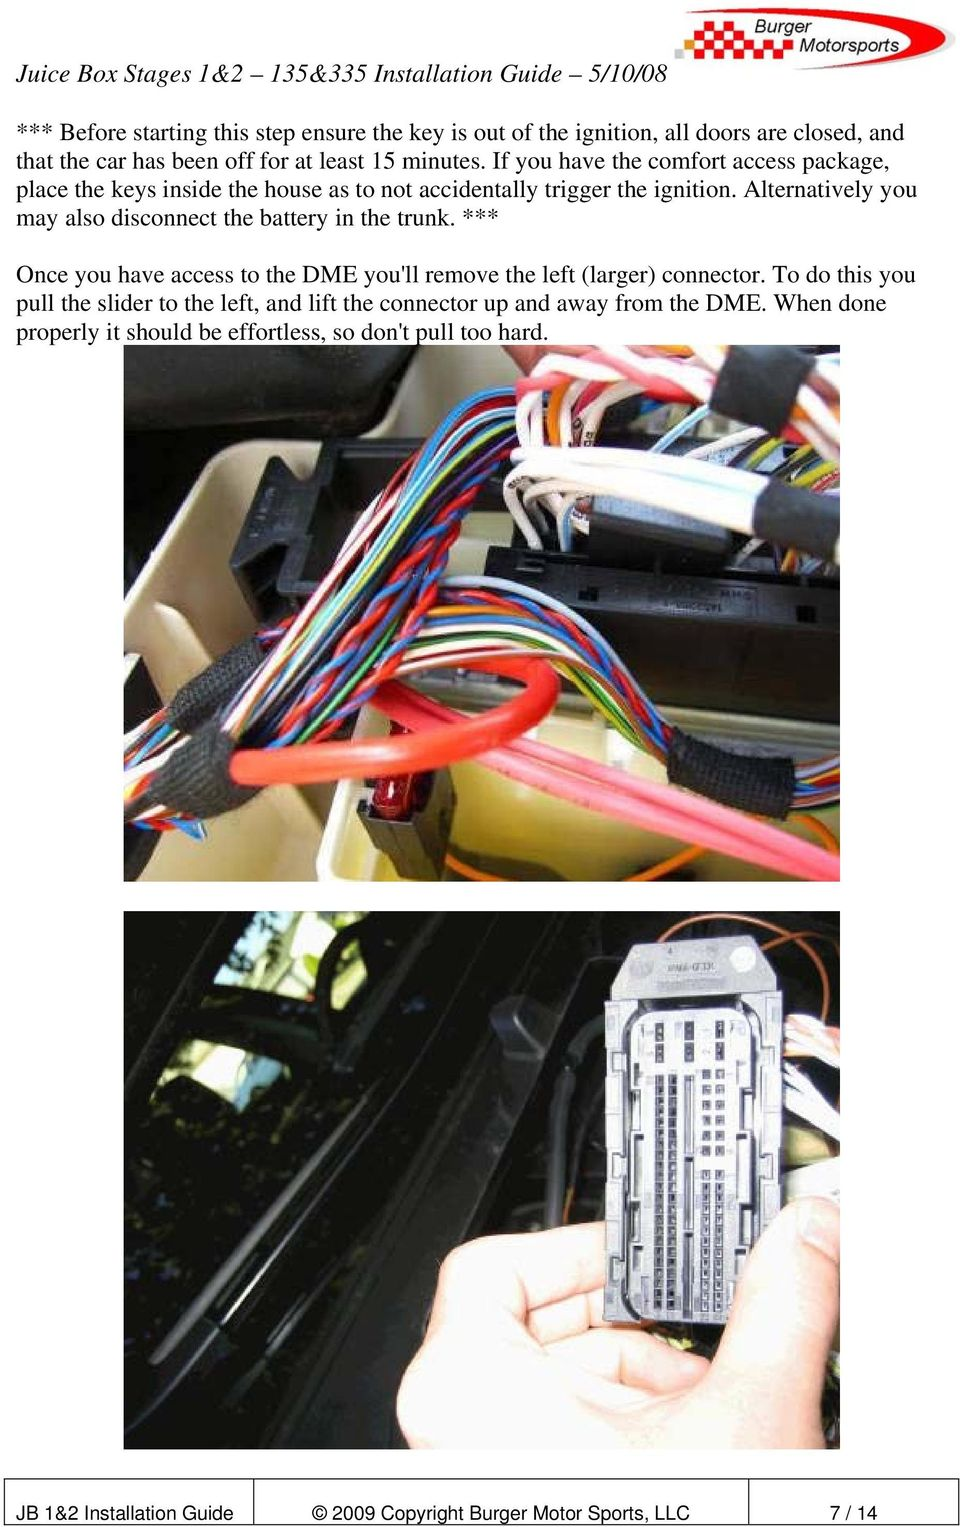 Alternatively you may also disconnect the battery in the trunk. *** Once you have access to the DME you'll remove the left (larger) connector.